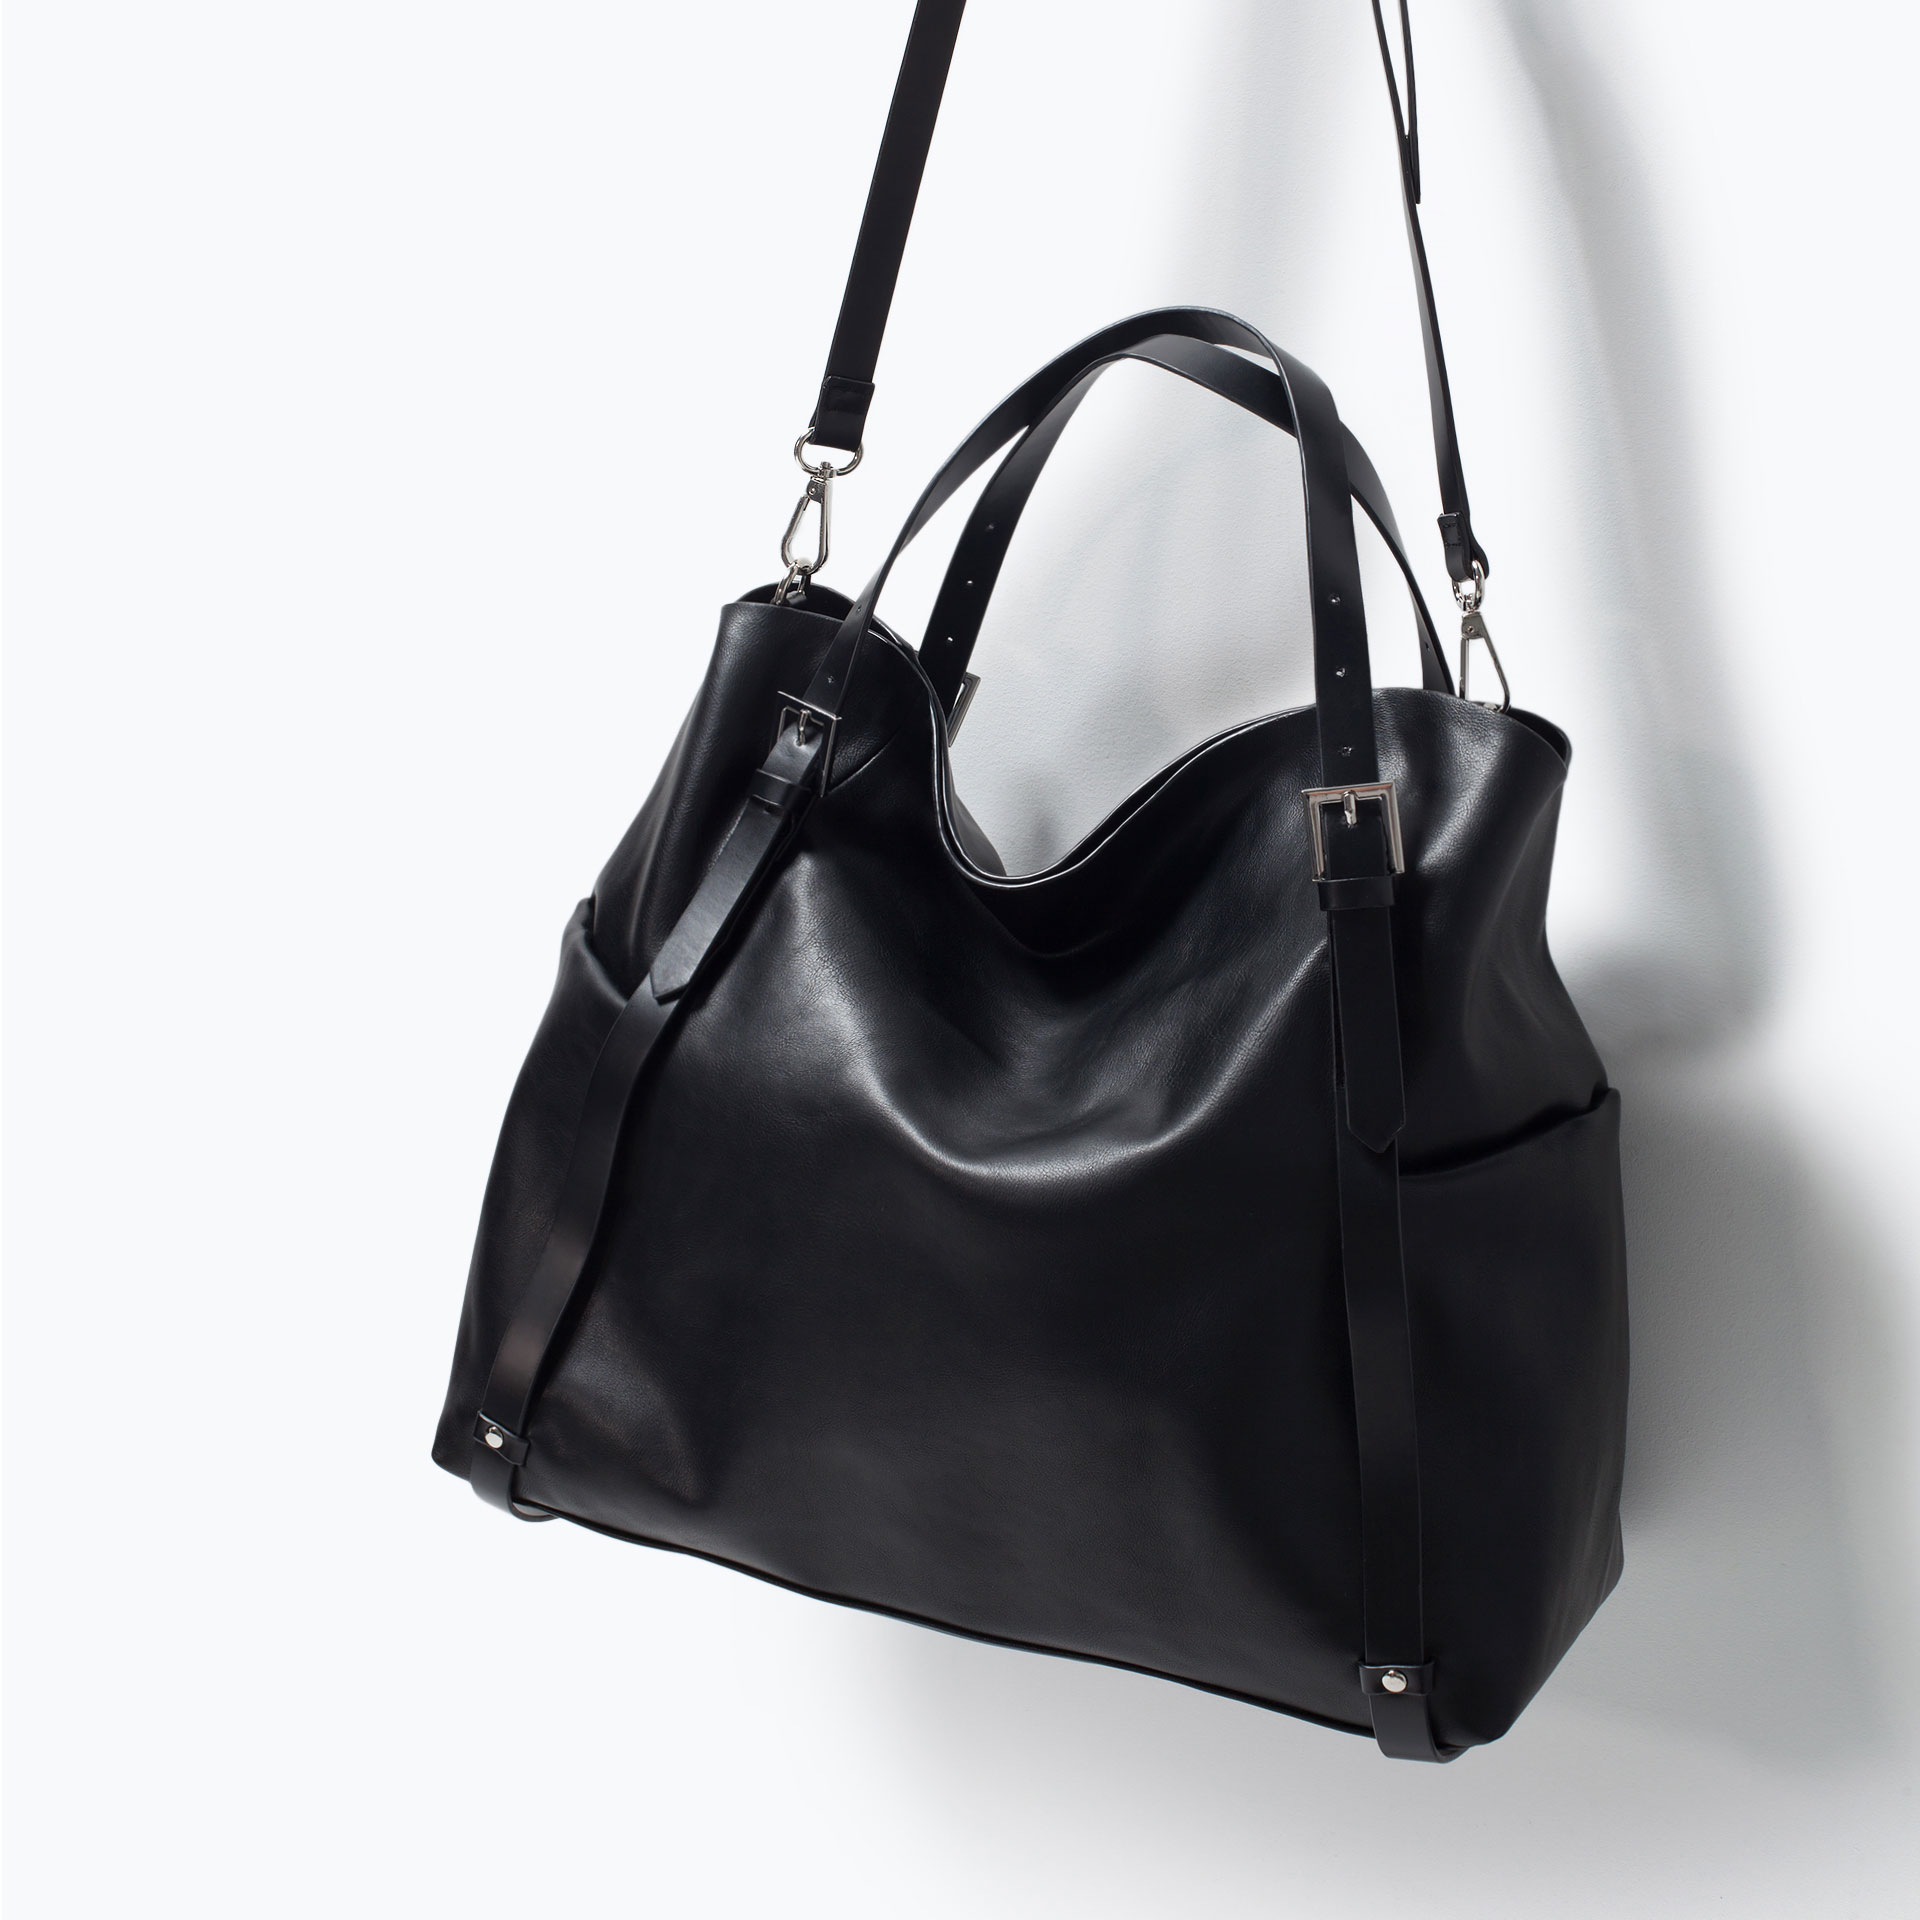 Shopper Bag Zara Zara Soft Shopper Bag £29.99